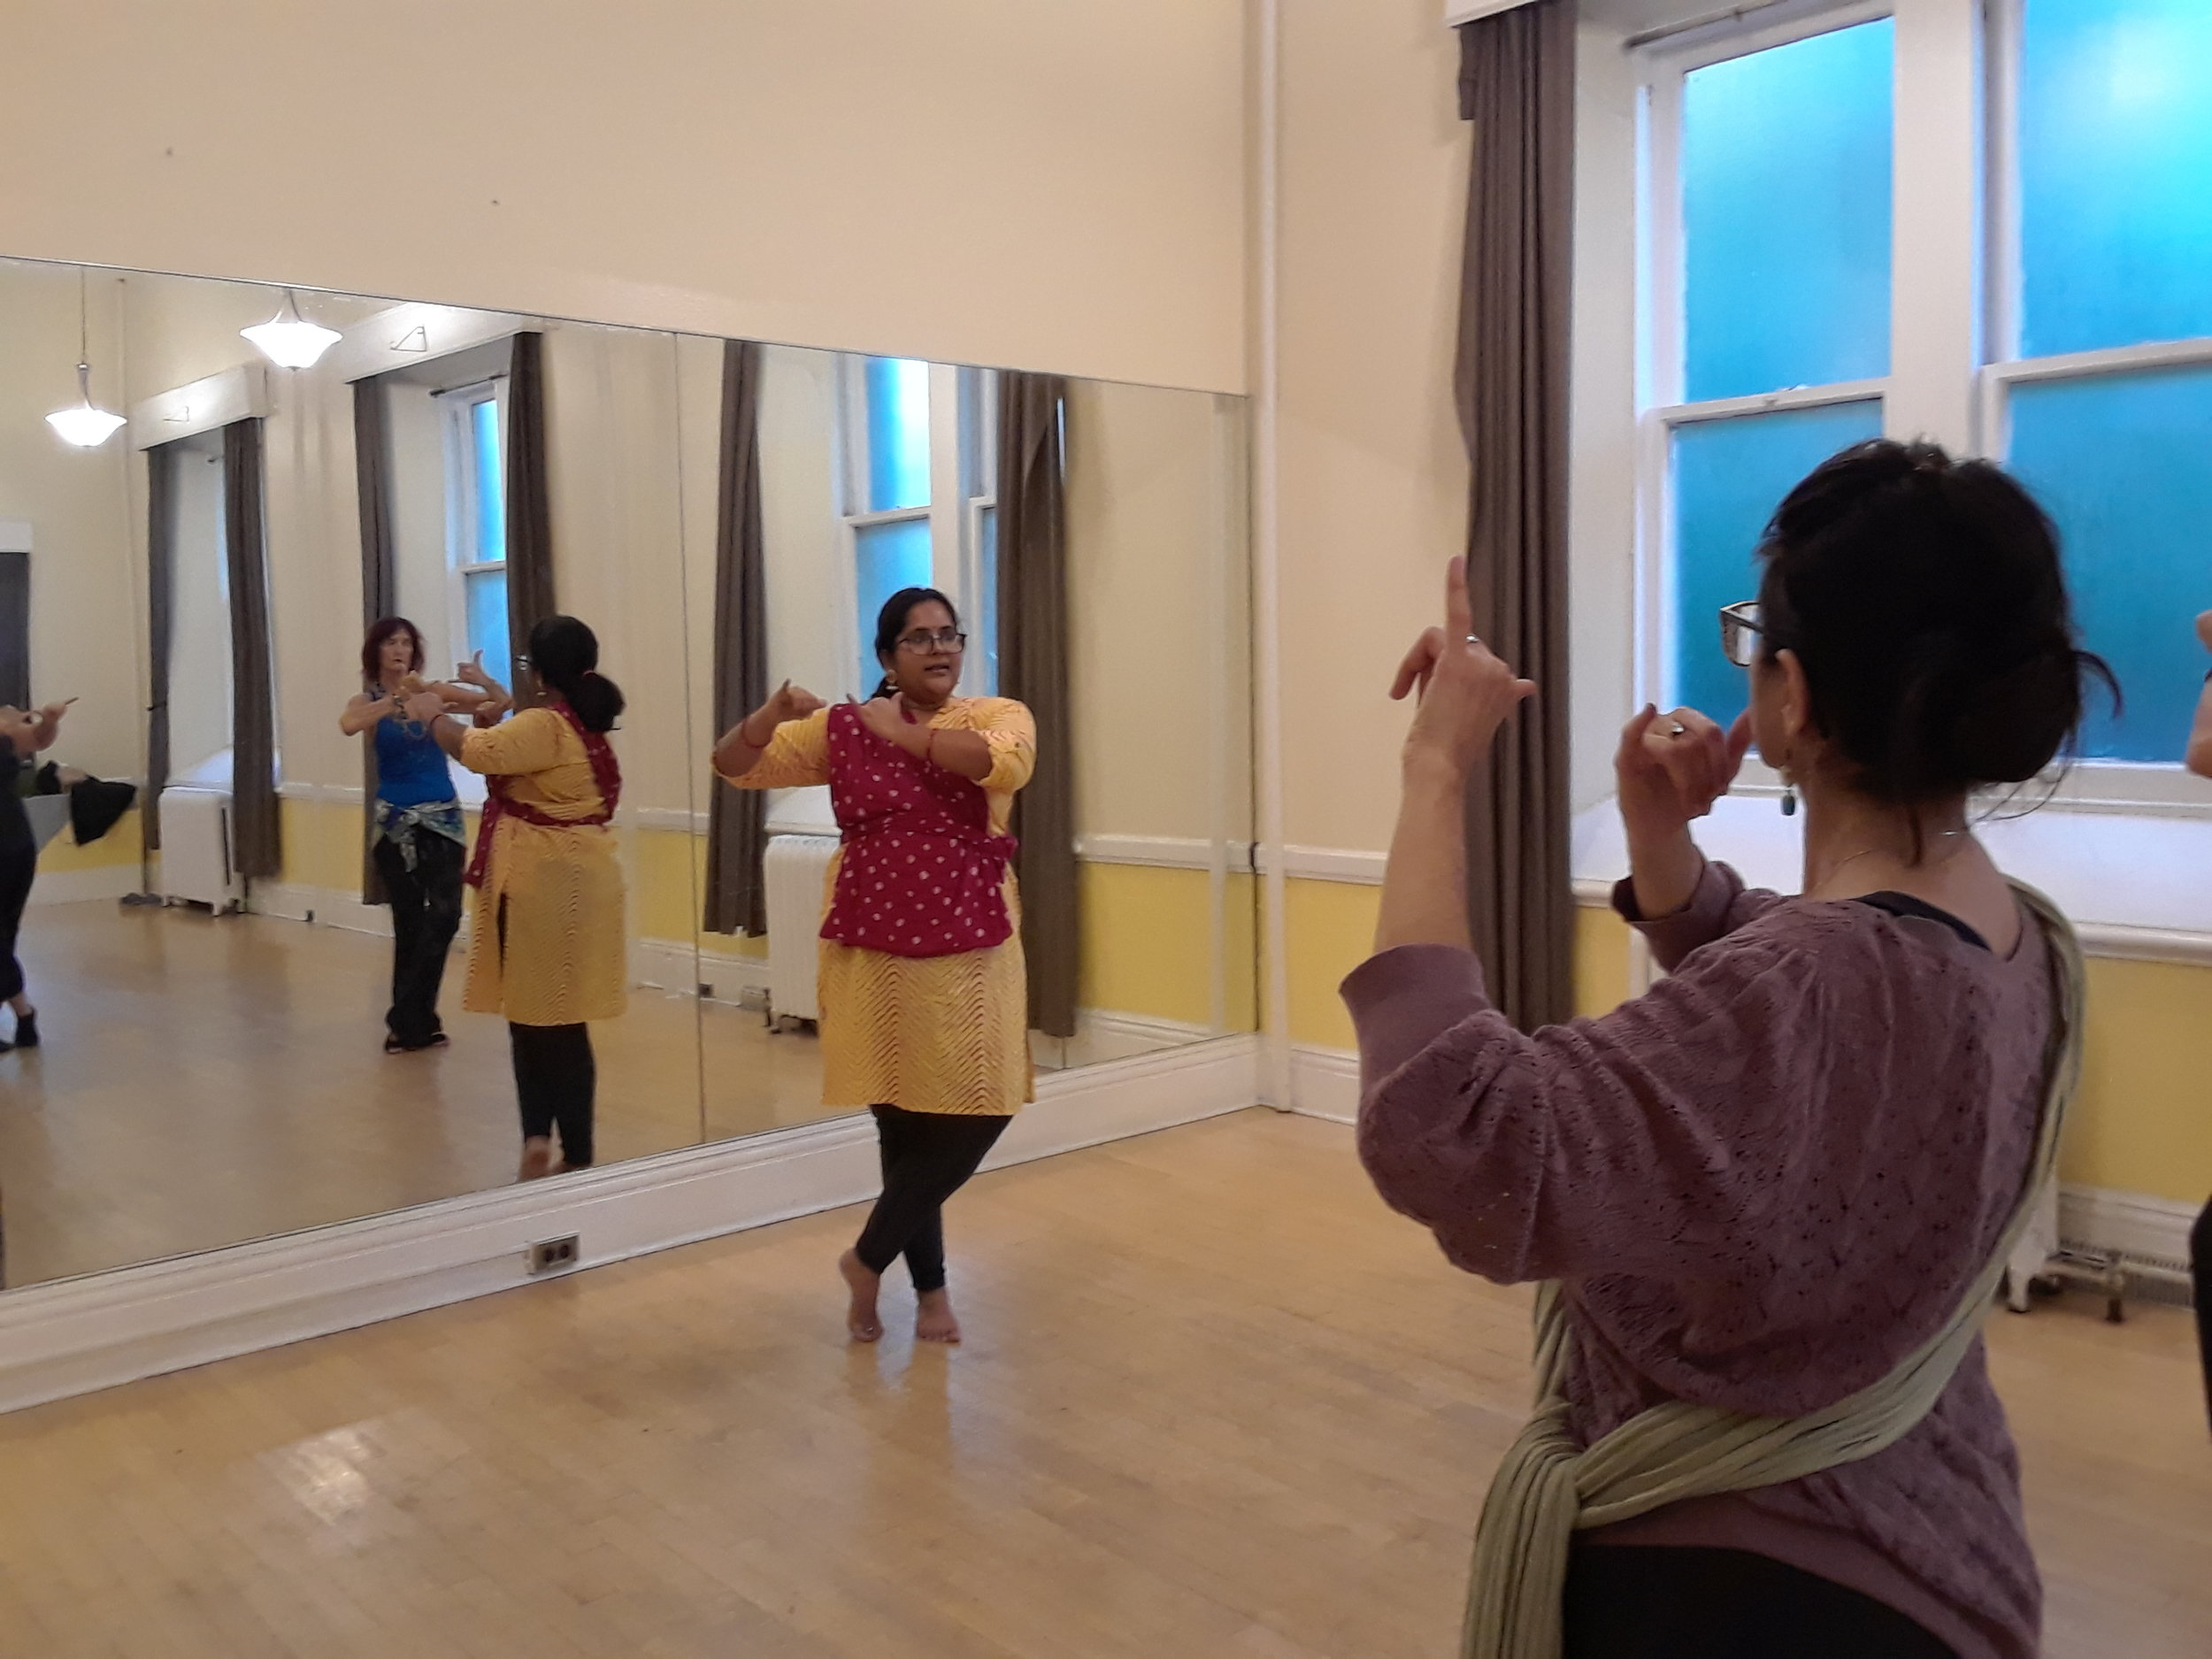 bollywood_and_classical_indian_dance_classes_in_toronto (3).jpg